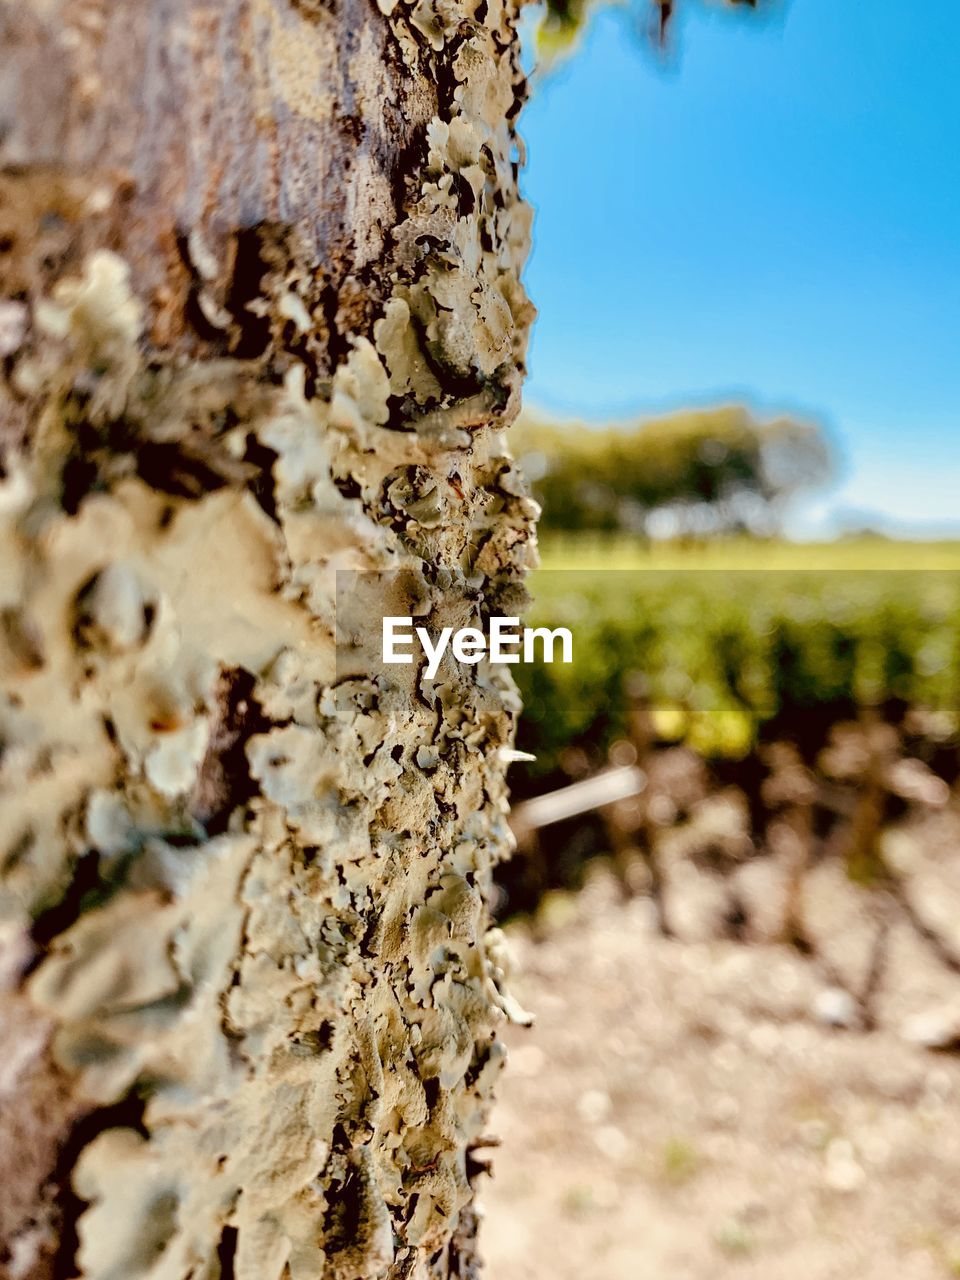 plant, close-up, trunk, nature, tree trunk, day, tree, focus on foreground, growth, beauty in nature, field, land, no people, outdoors, selective focus, sunlight, textured, tranquility, bark, rough, lichen